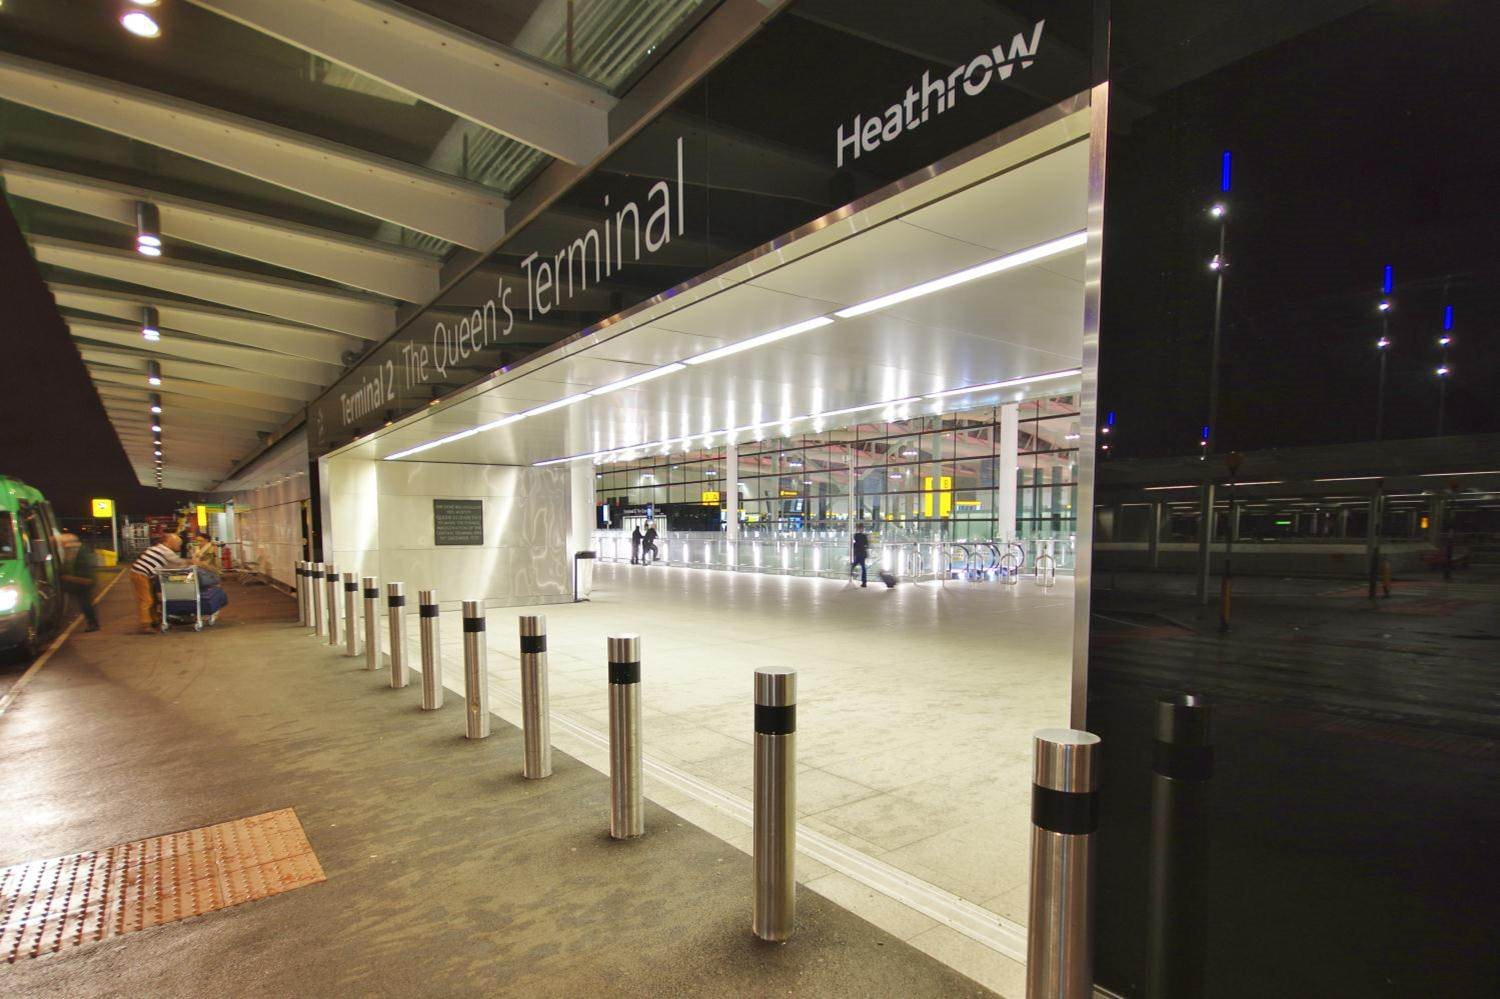 External view of Terminal 2 at Heathrow Airport